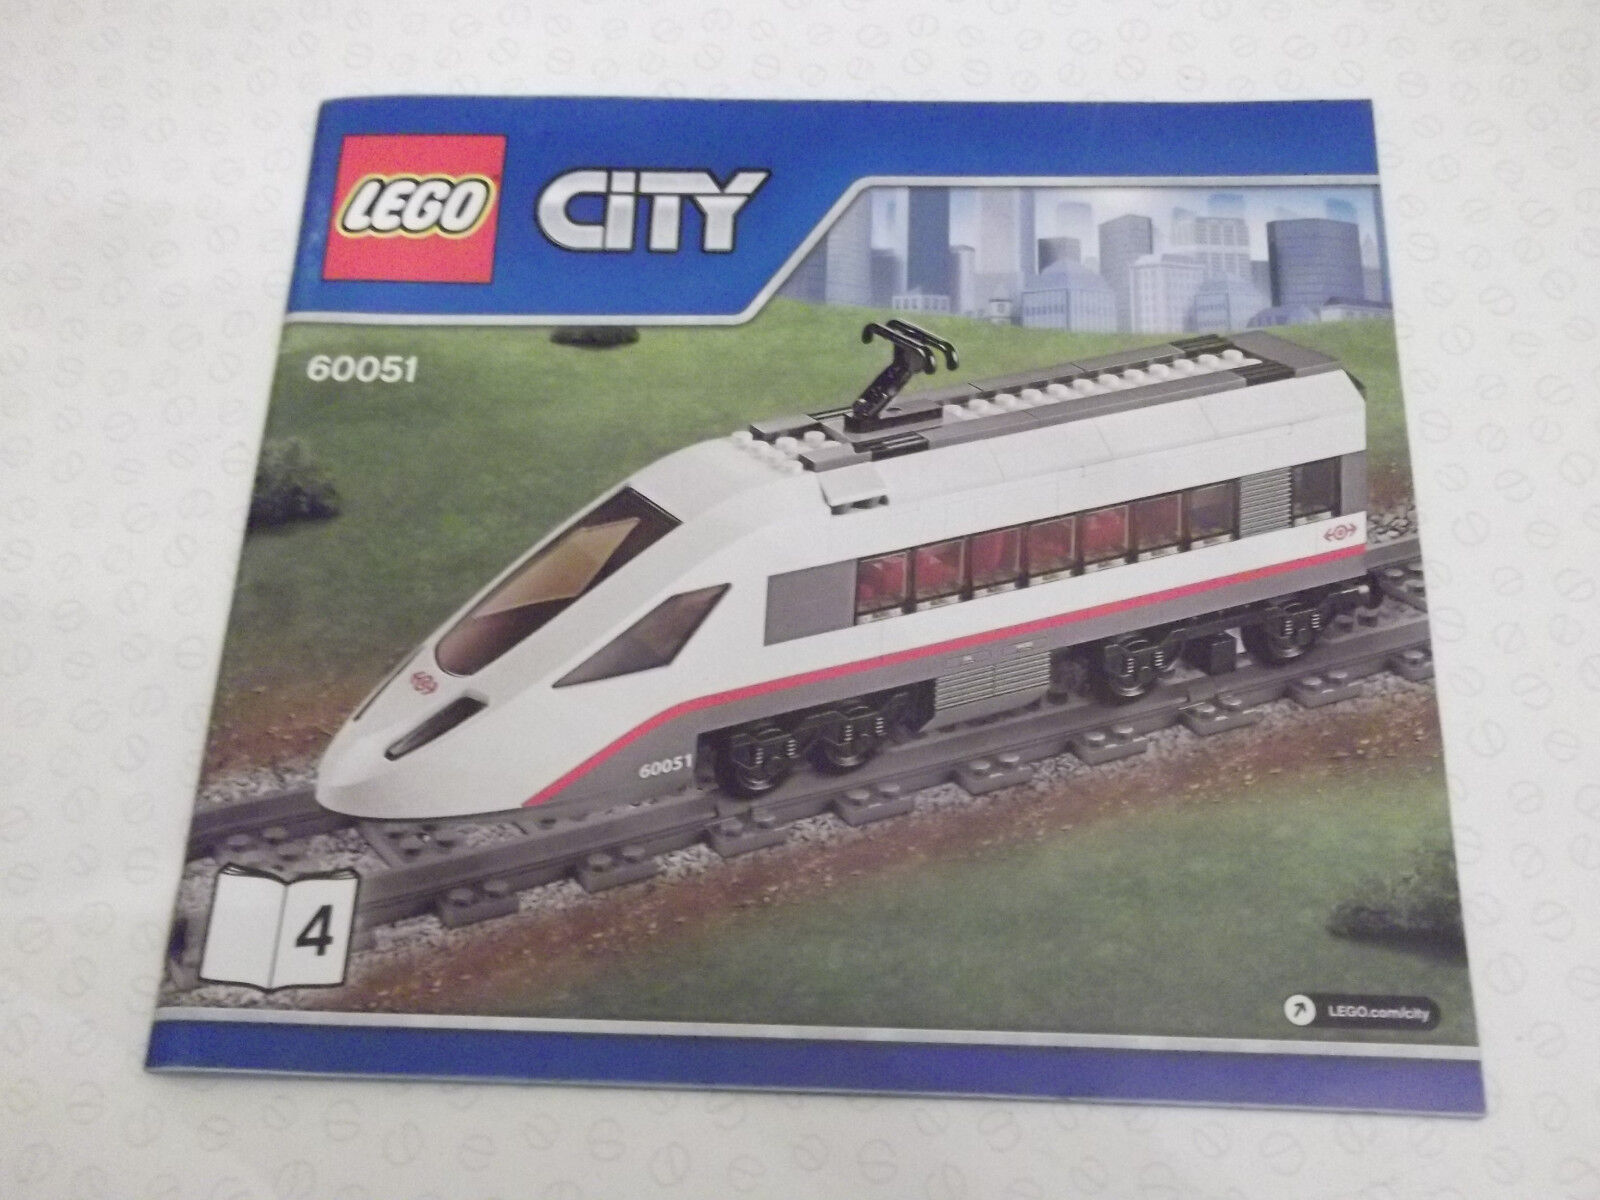 2 Lego City Locomotive 5-12 60051 new to add to layout with motor and controler